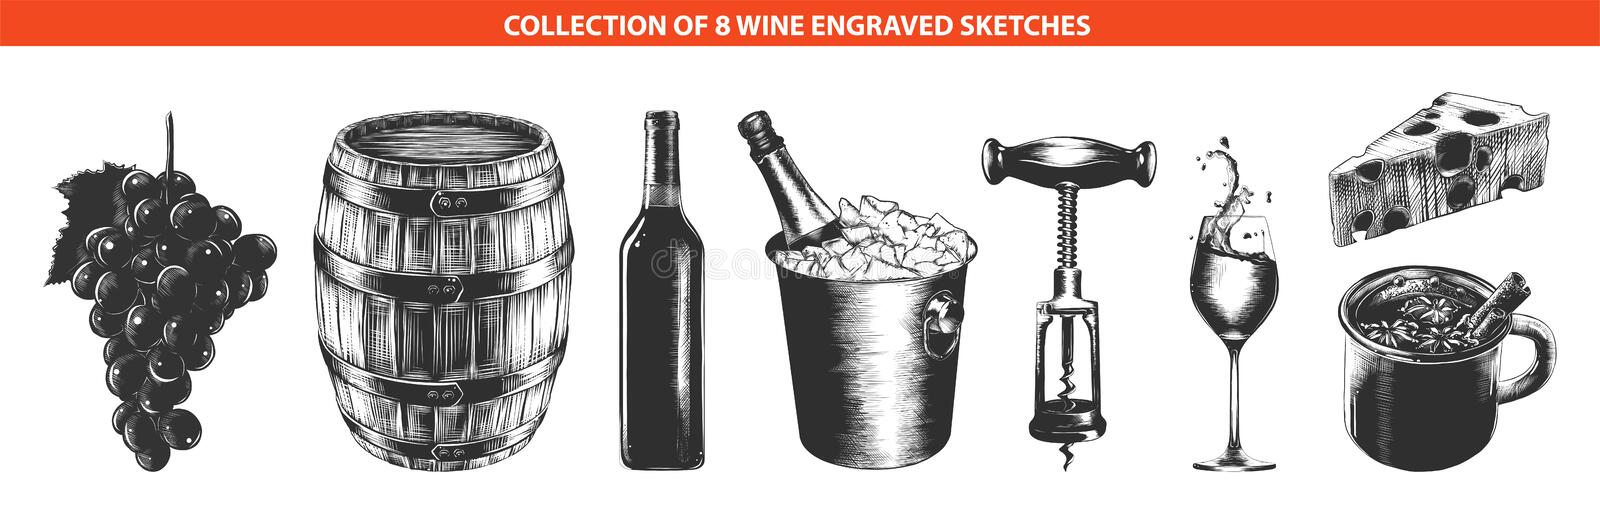 Hand drawn sketches of in monochrome isolated on white background. Detailed vintage woodcut style drawing. Vector engraved style wine list or menu collection for stock illustration